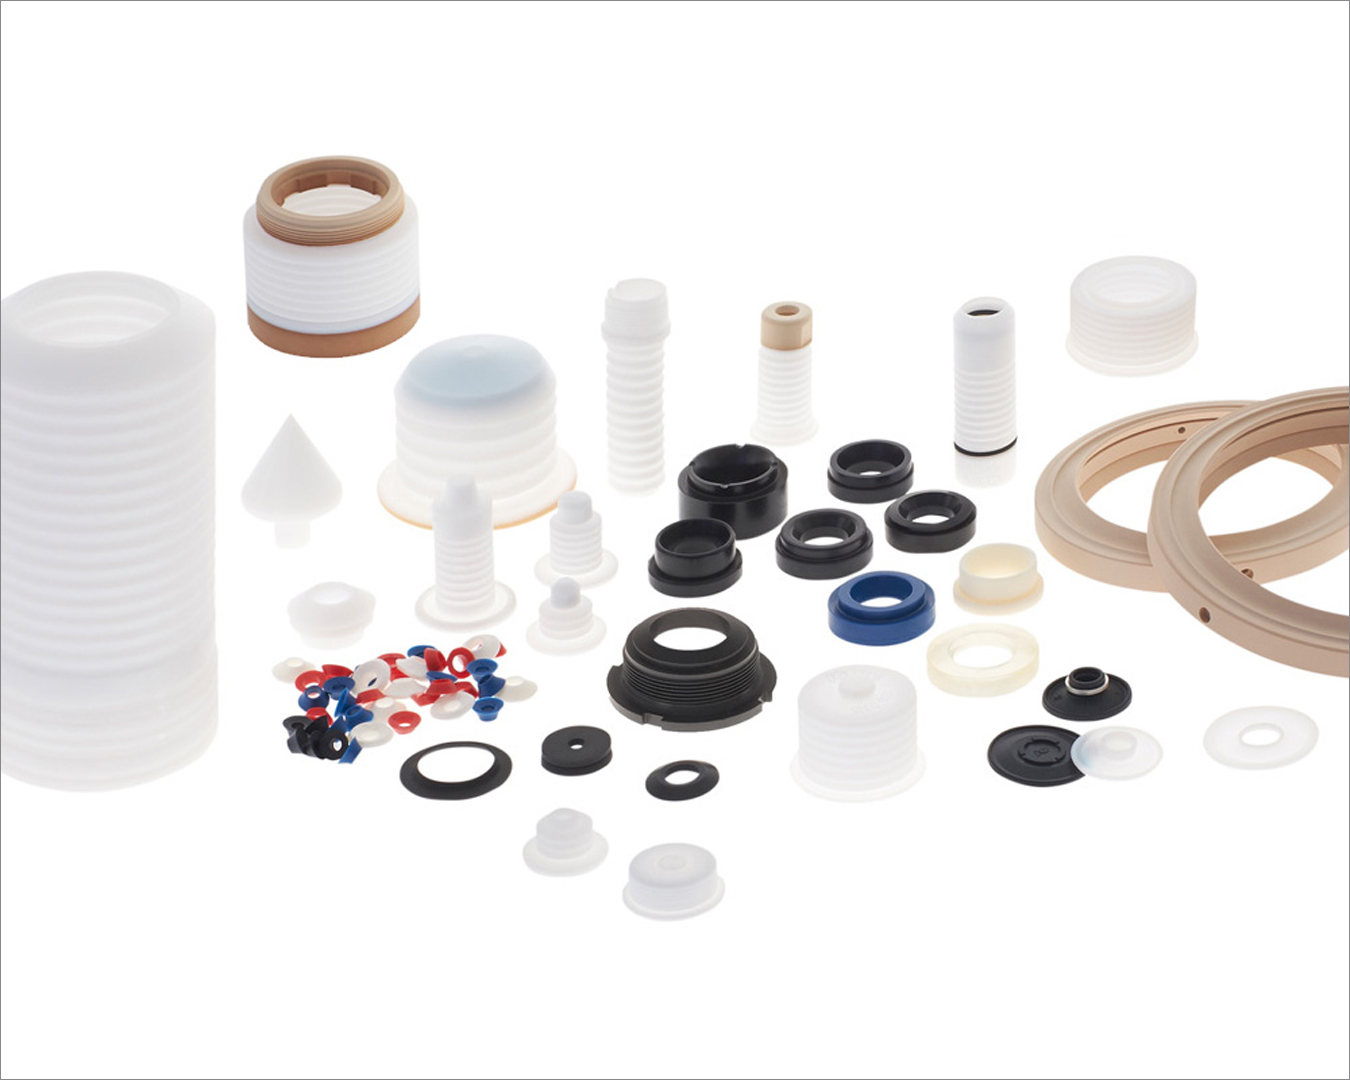 Product picture of Bellows, Diaphragms, Shaft seals, Gaskets, Pressure seals and Sprays